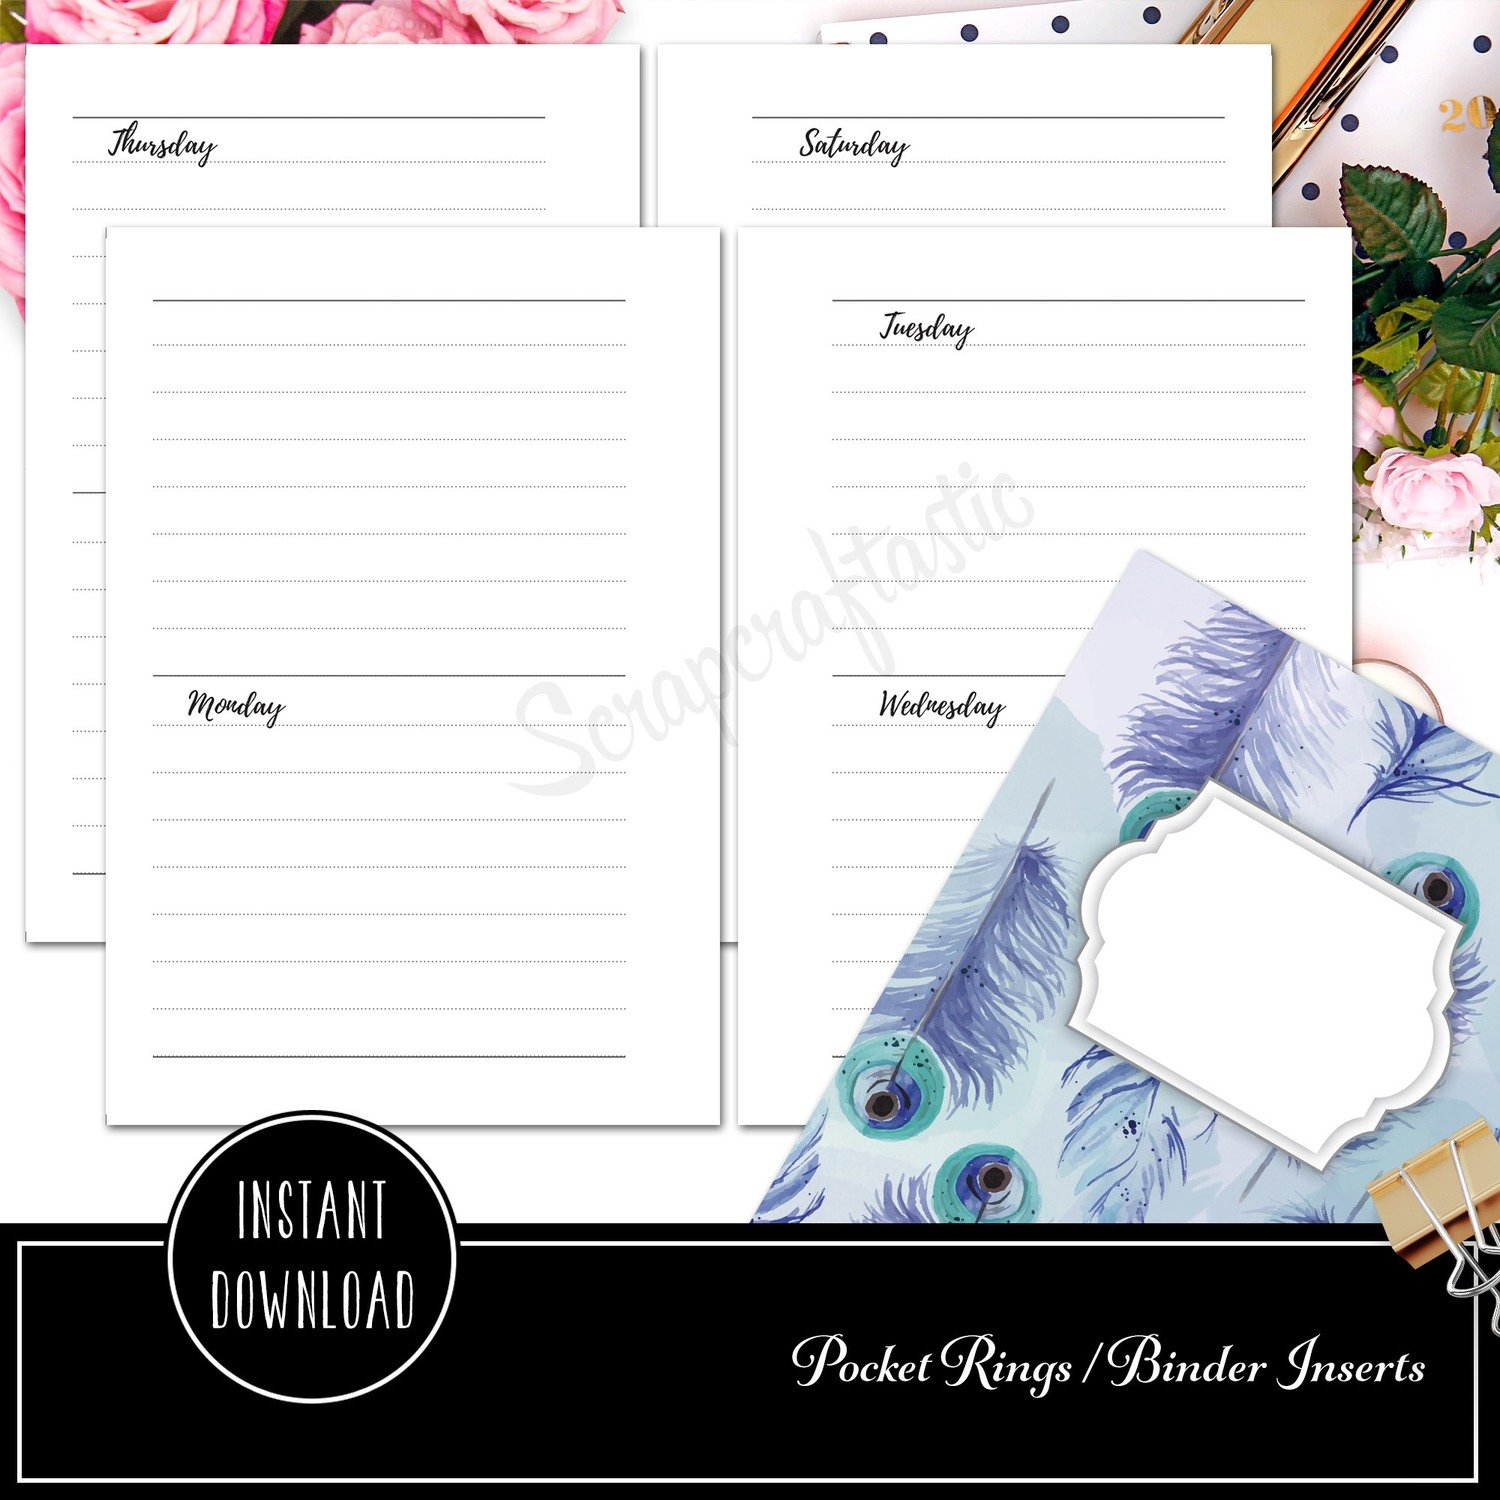 POCKET RINGS - Week on Four Pages Horizontal Ring Binder Printable Insert Refill Undated